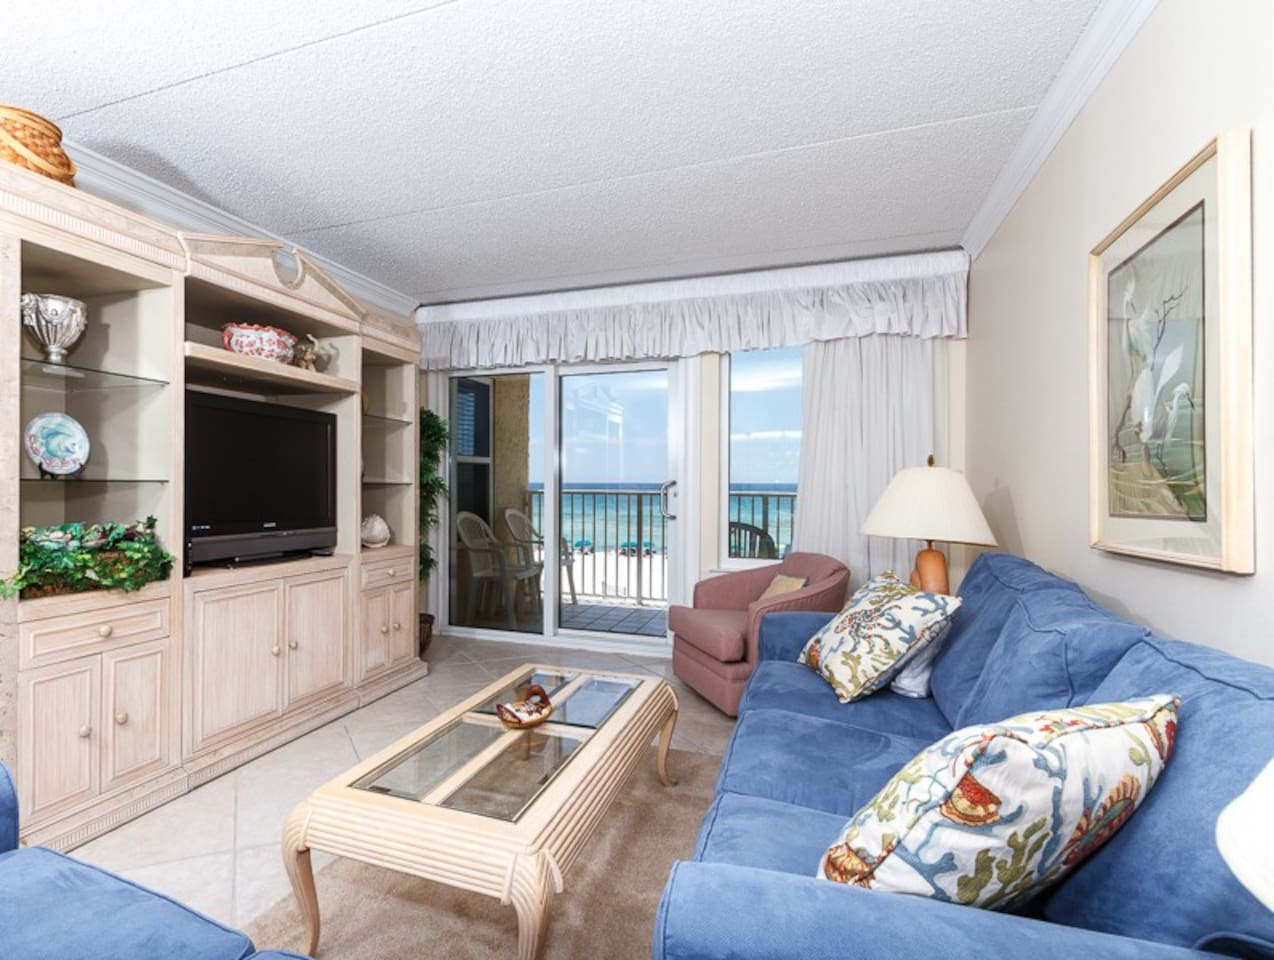 New flat screen TV and a great beachfront view - both for your viewing pleasure! Also new sofa and love seat in the living room added in June 2014! Sofa is a queen size sleeper.